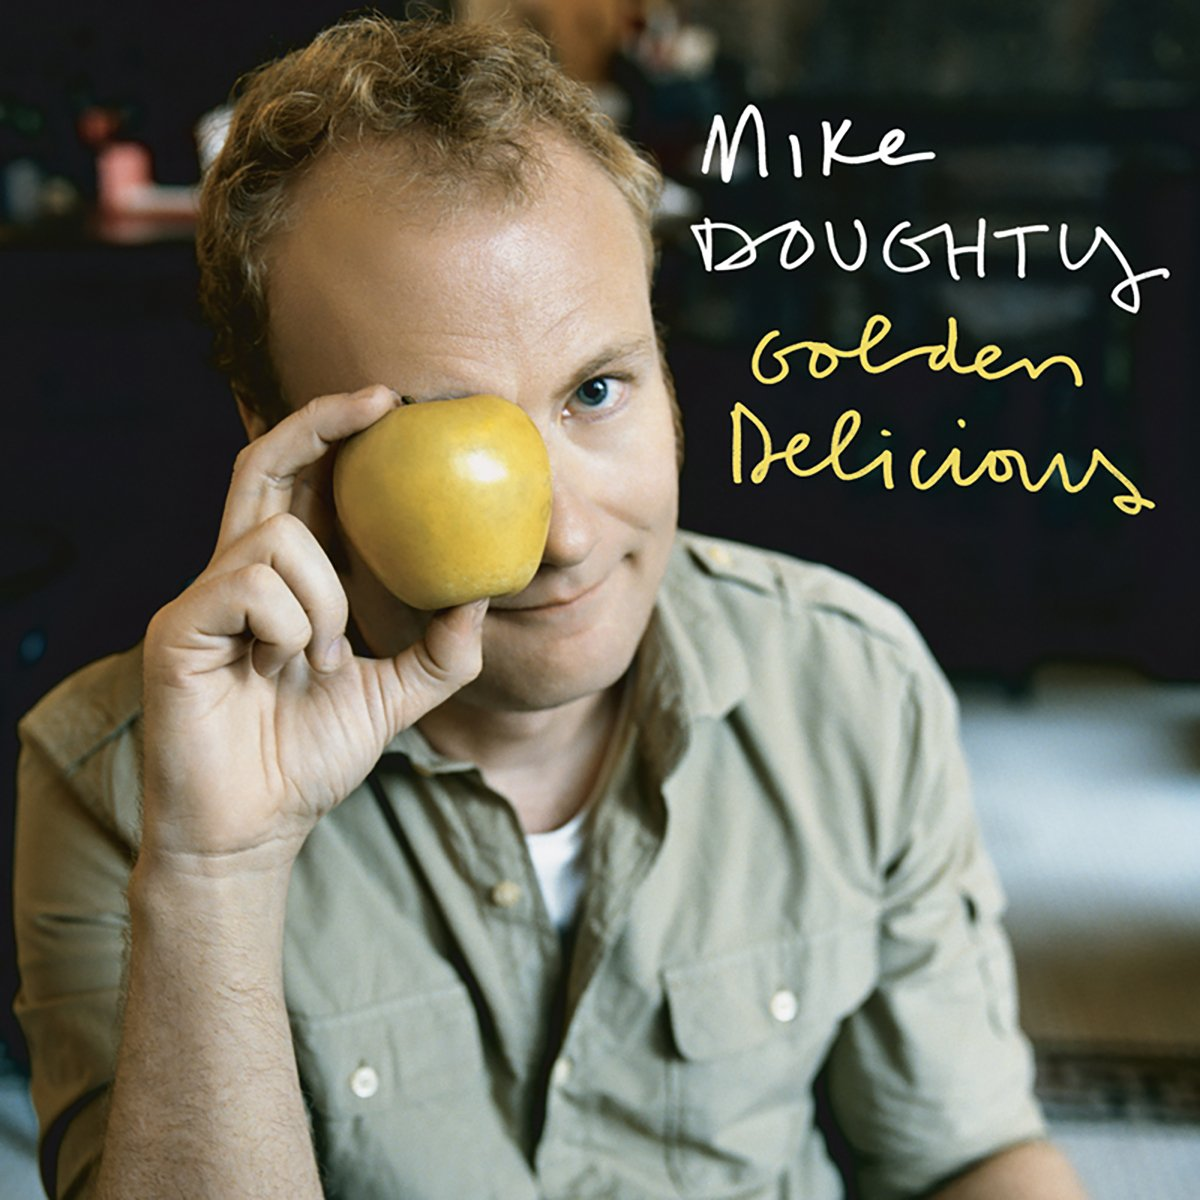 Mike Doughty, Golden Delicious